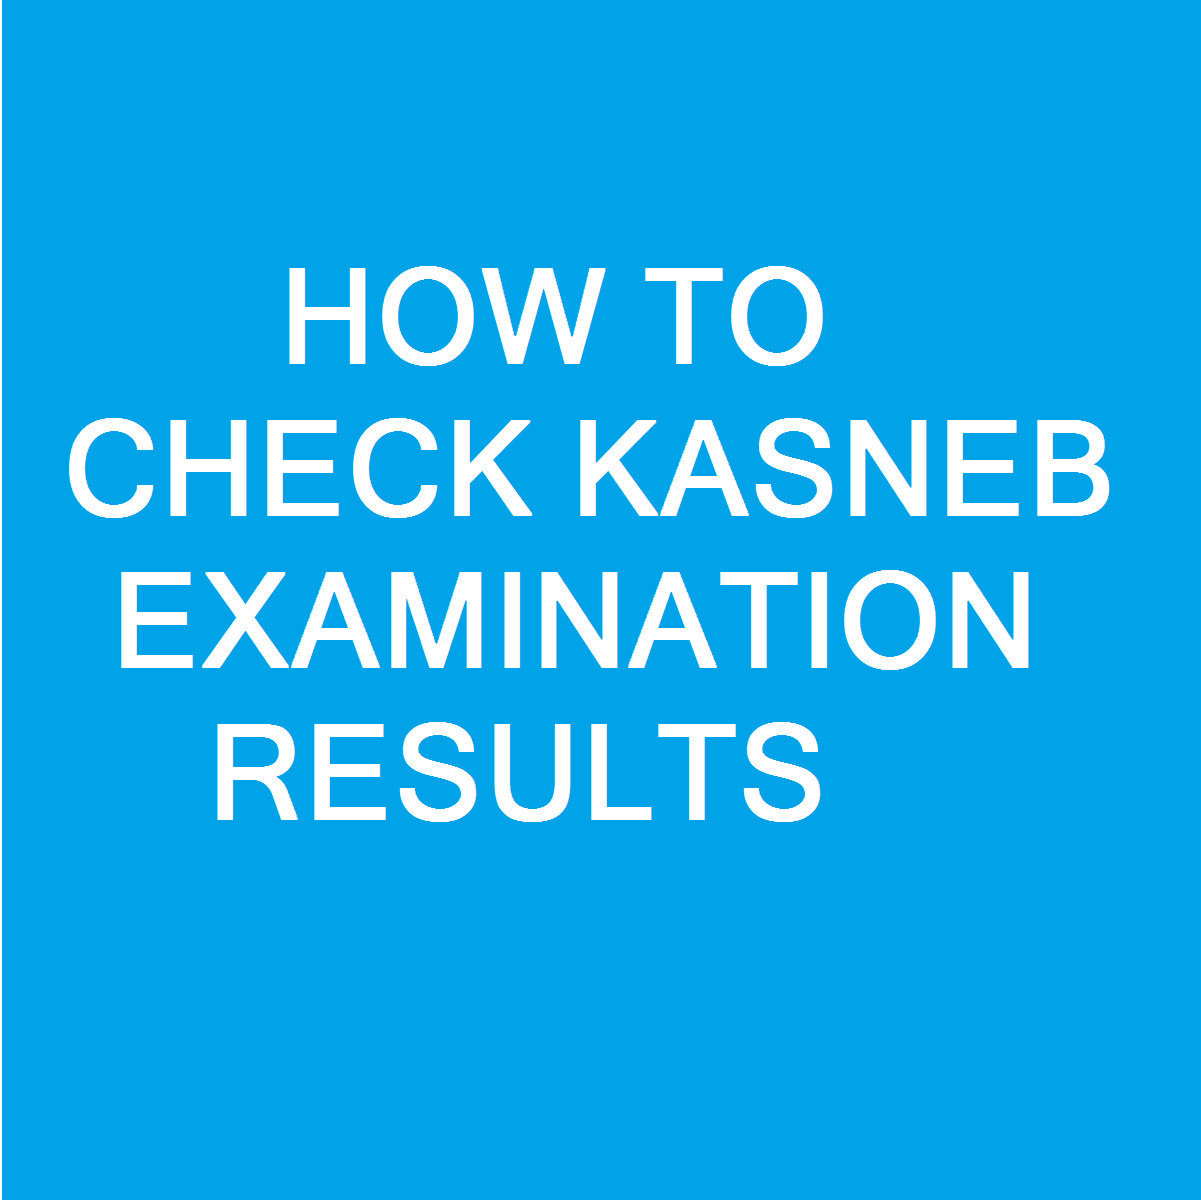 KASNEB Examination Results